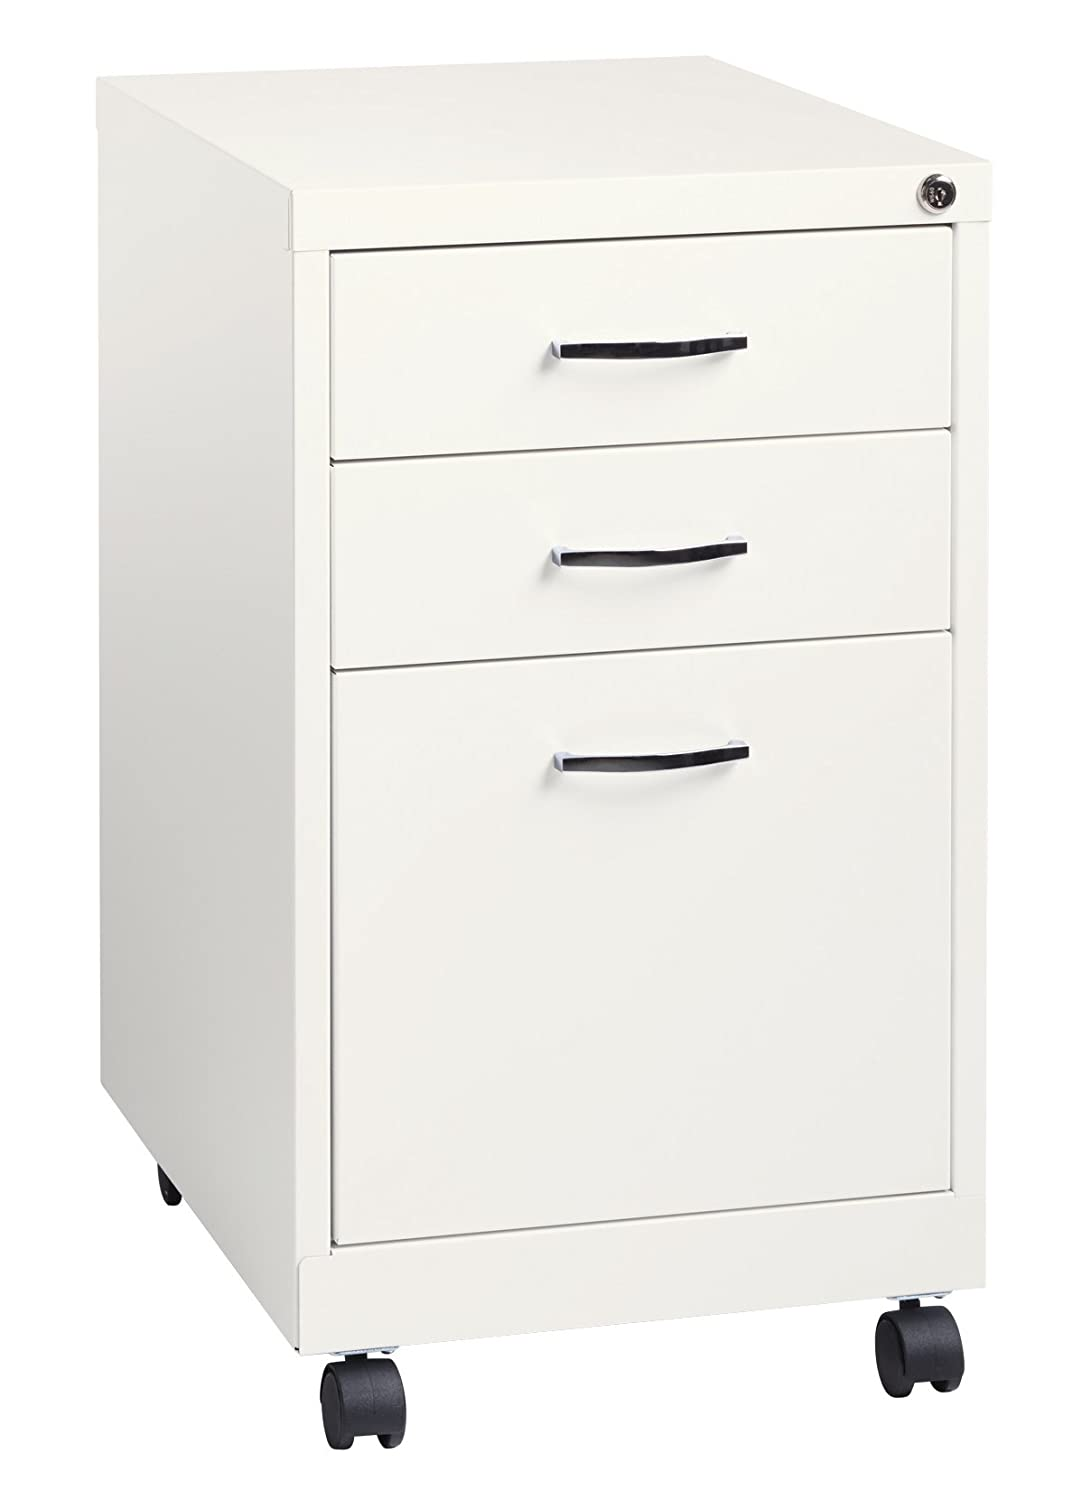 Space Solutions 19 Deep Black Pedestal File Cabinet, Inch Hirsh Industries 21645